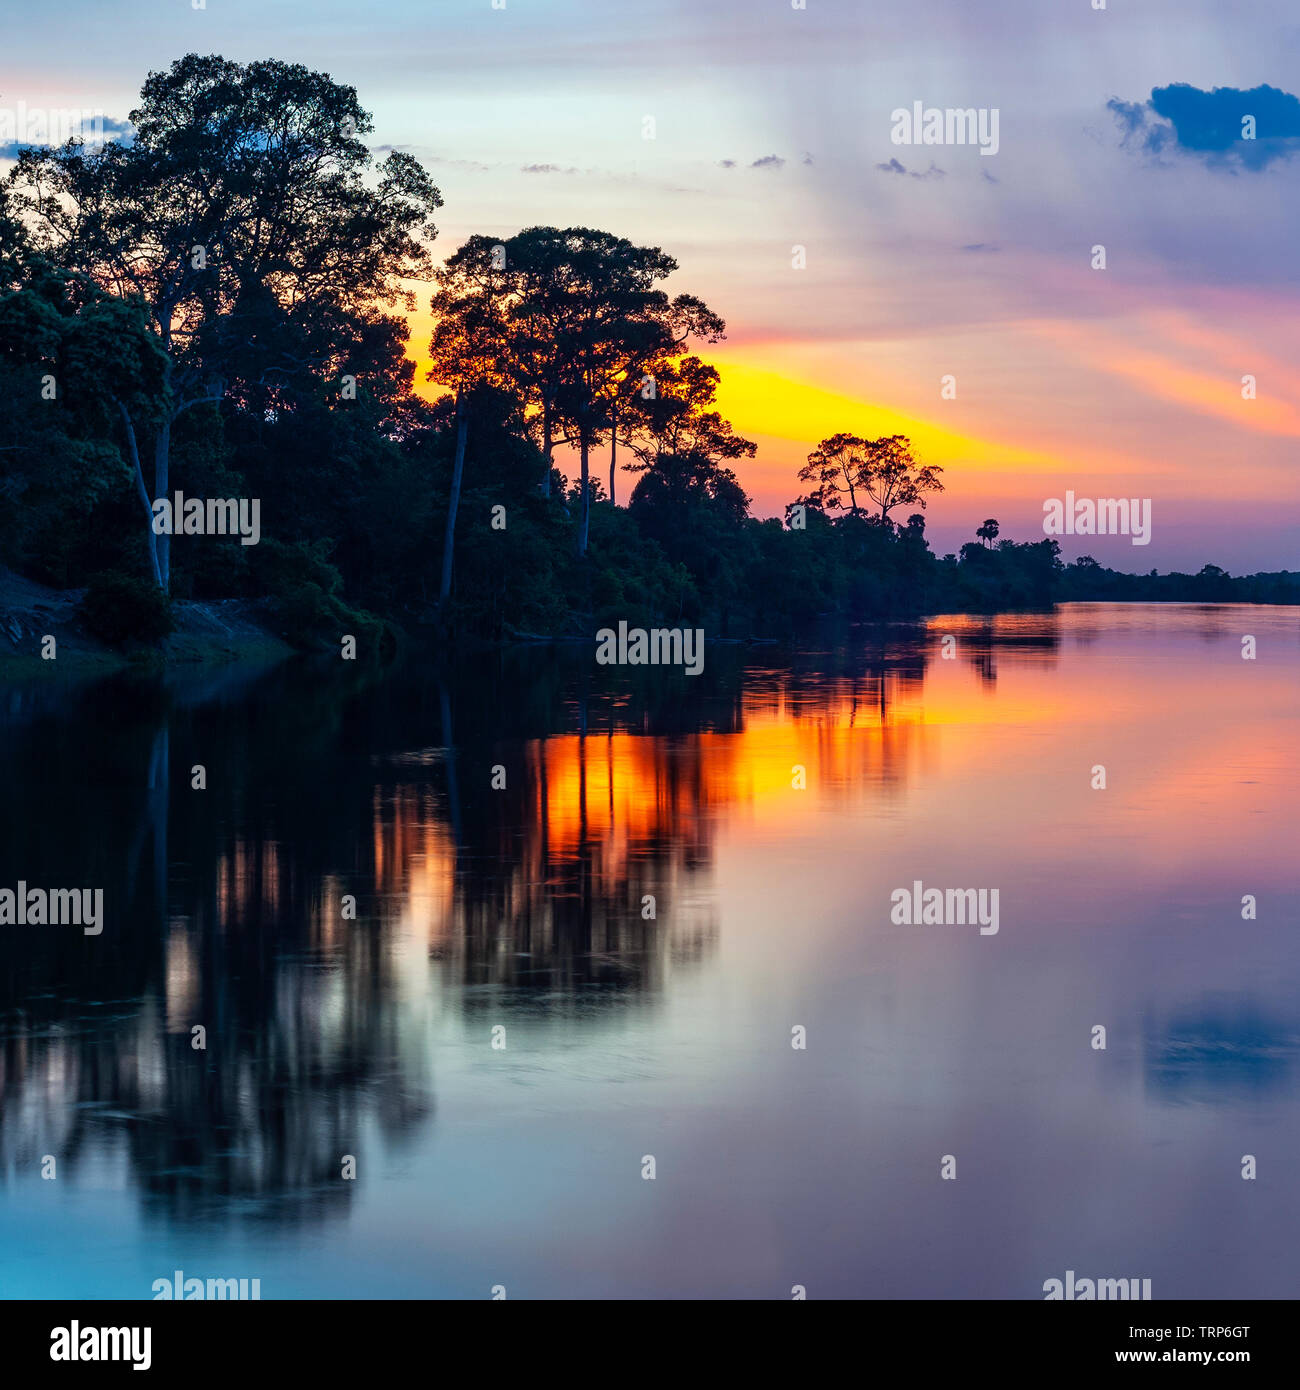 Sunset in the Amazon river basin which comprise the countries of Brazil, Bolivia, Colombia, Ecuador, (French) Guyana, Suriname, Peru and Venezuela. - Stock Image